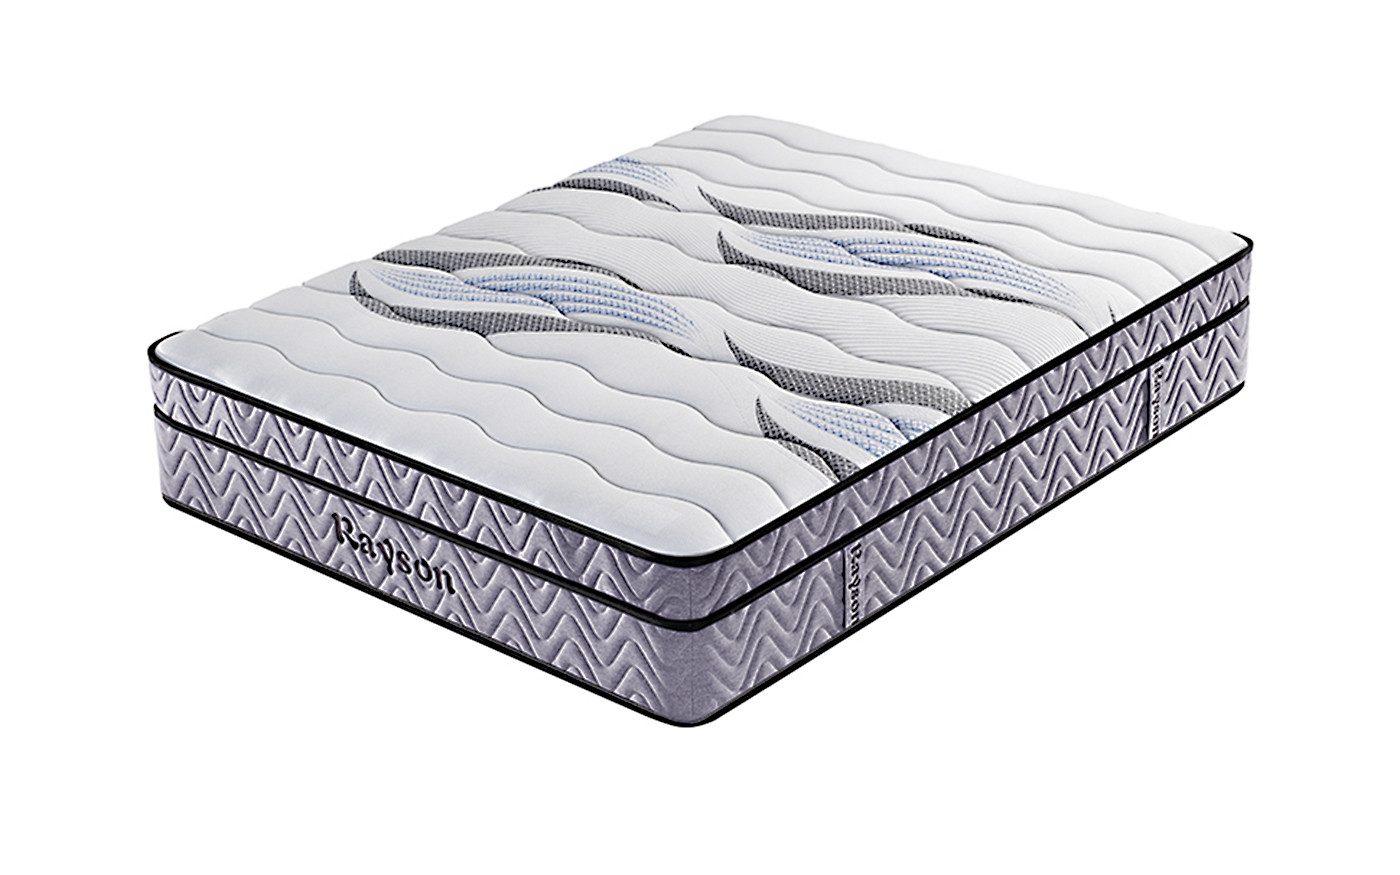 Synwin luxury 5 star hotel mattress brand wholesale bulk order-1